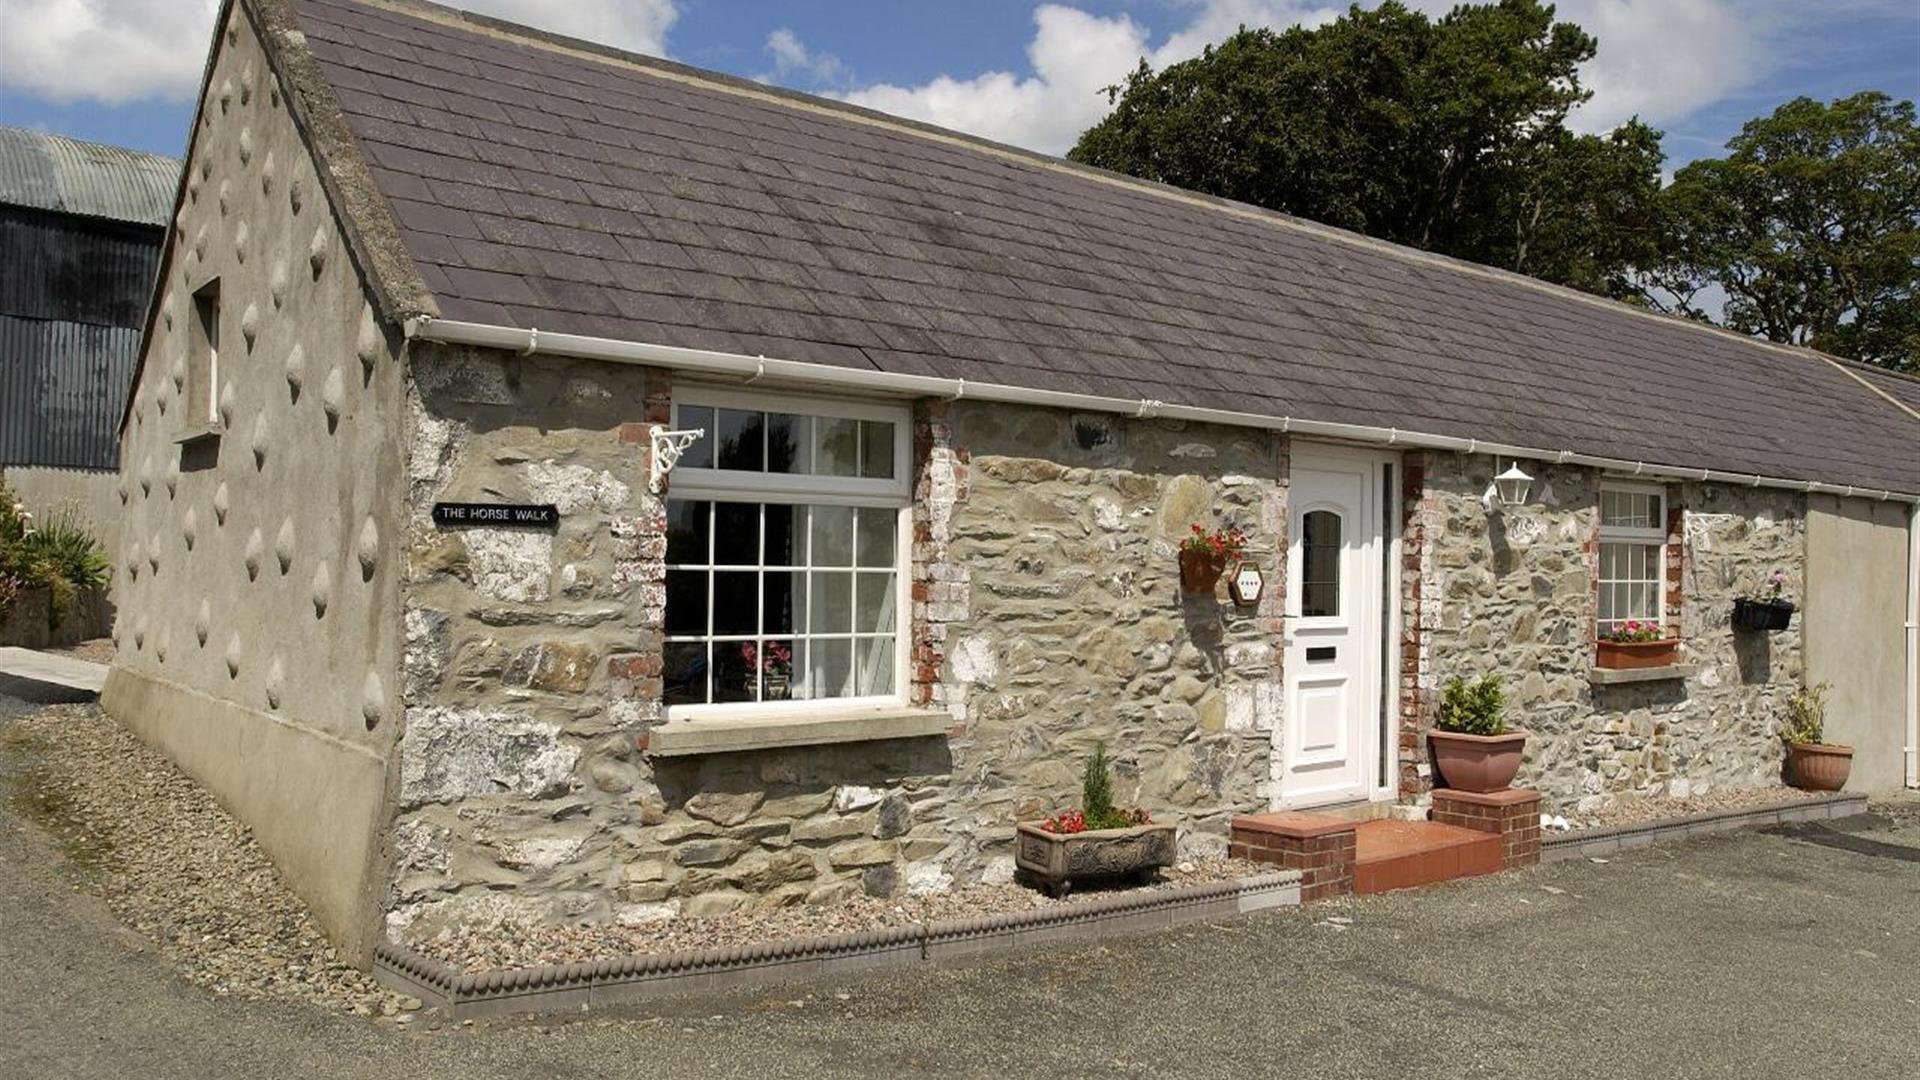 Newcastle Country Cottages - Horsewalk Cottage